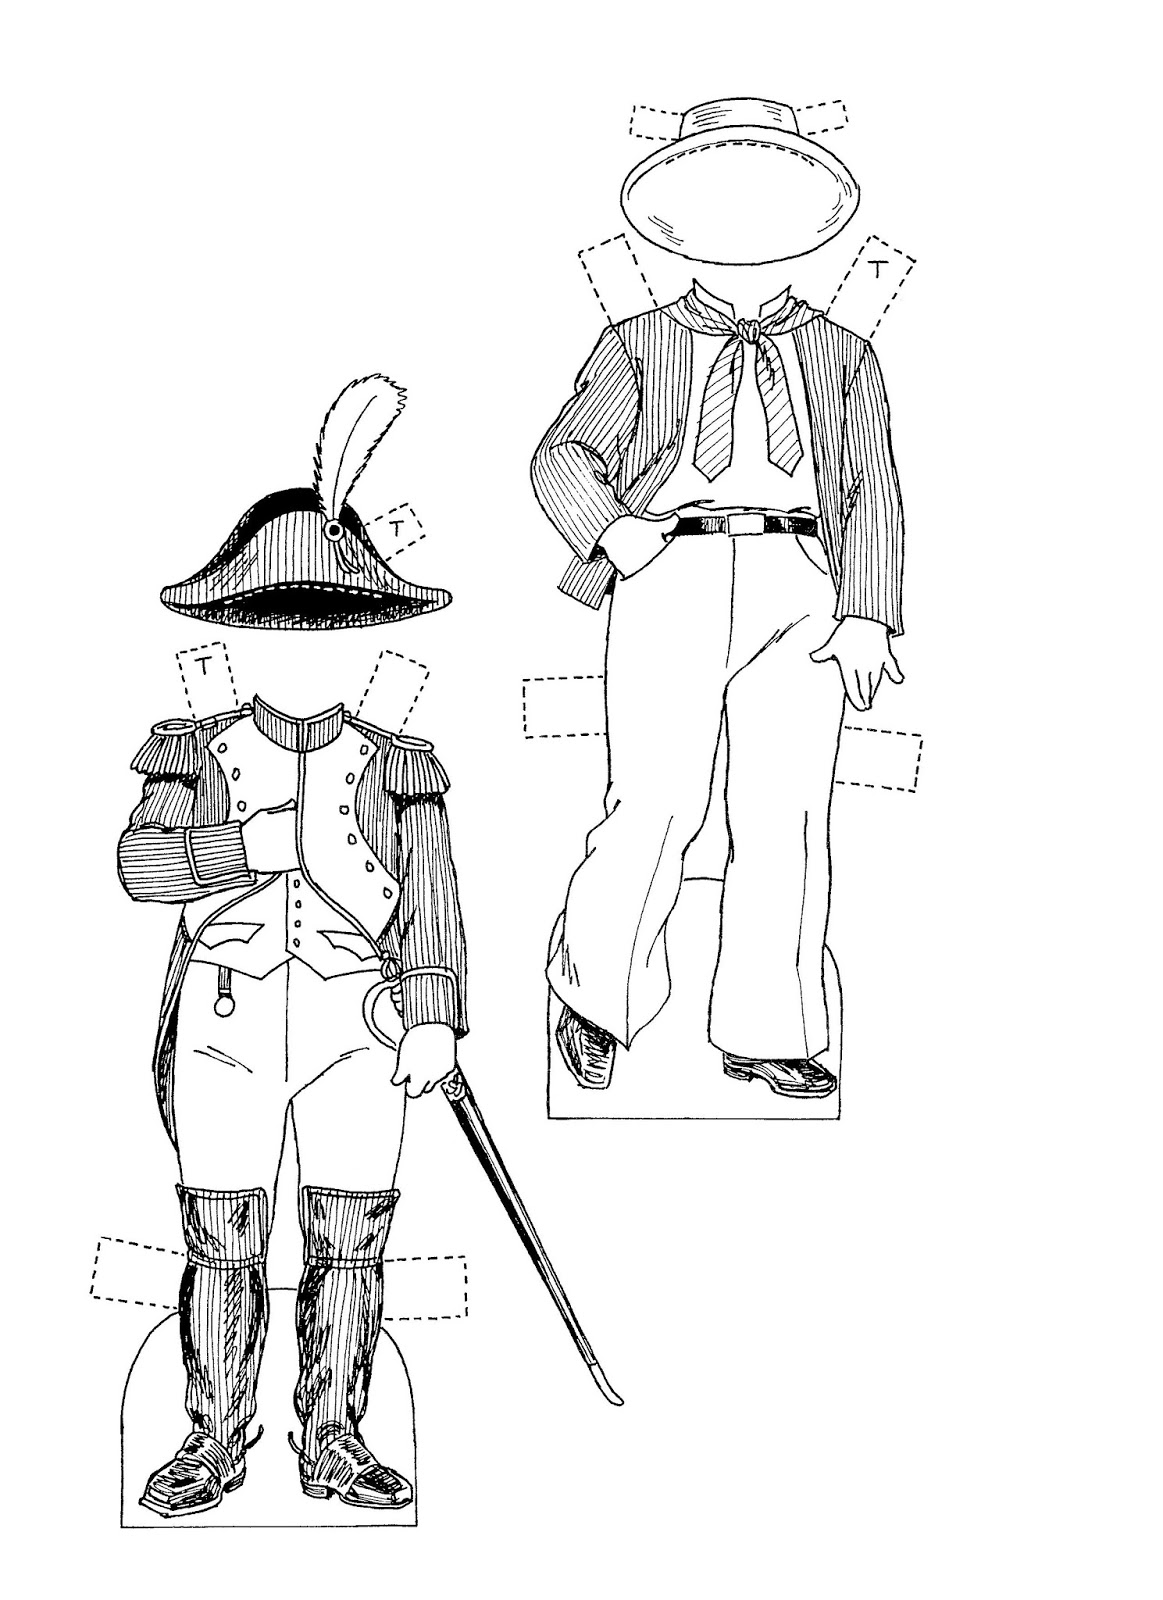 Mostly Paper Dolls Too!: Who Was General Tom Thumb? A